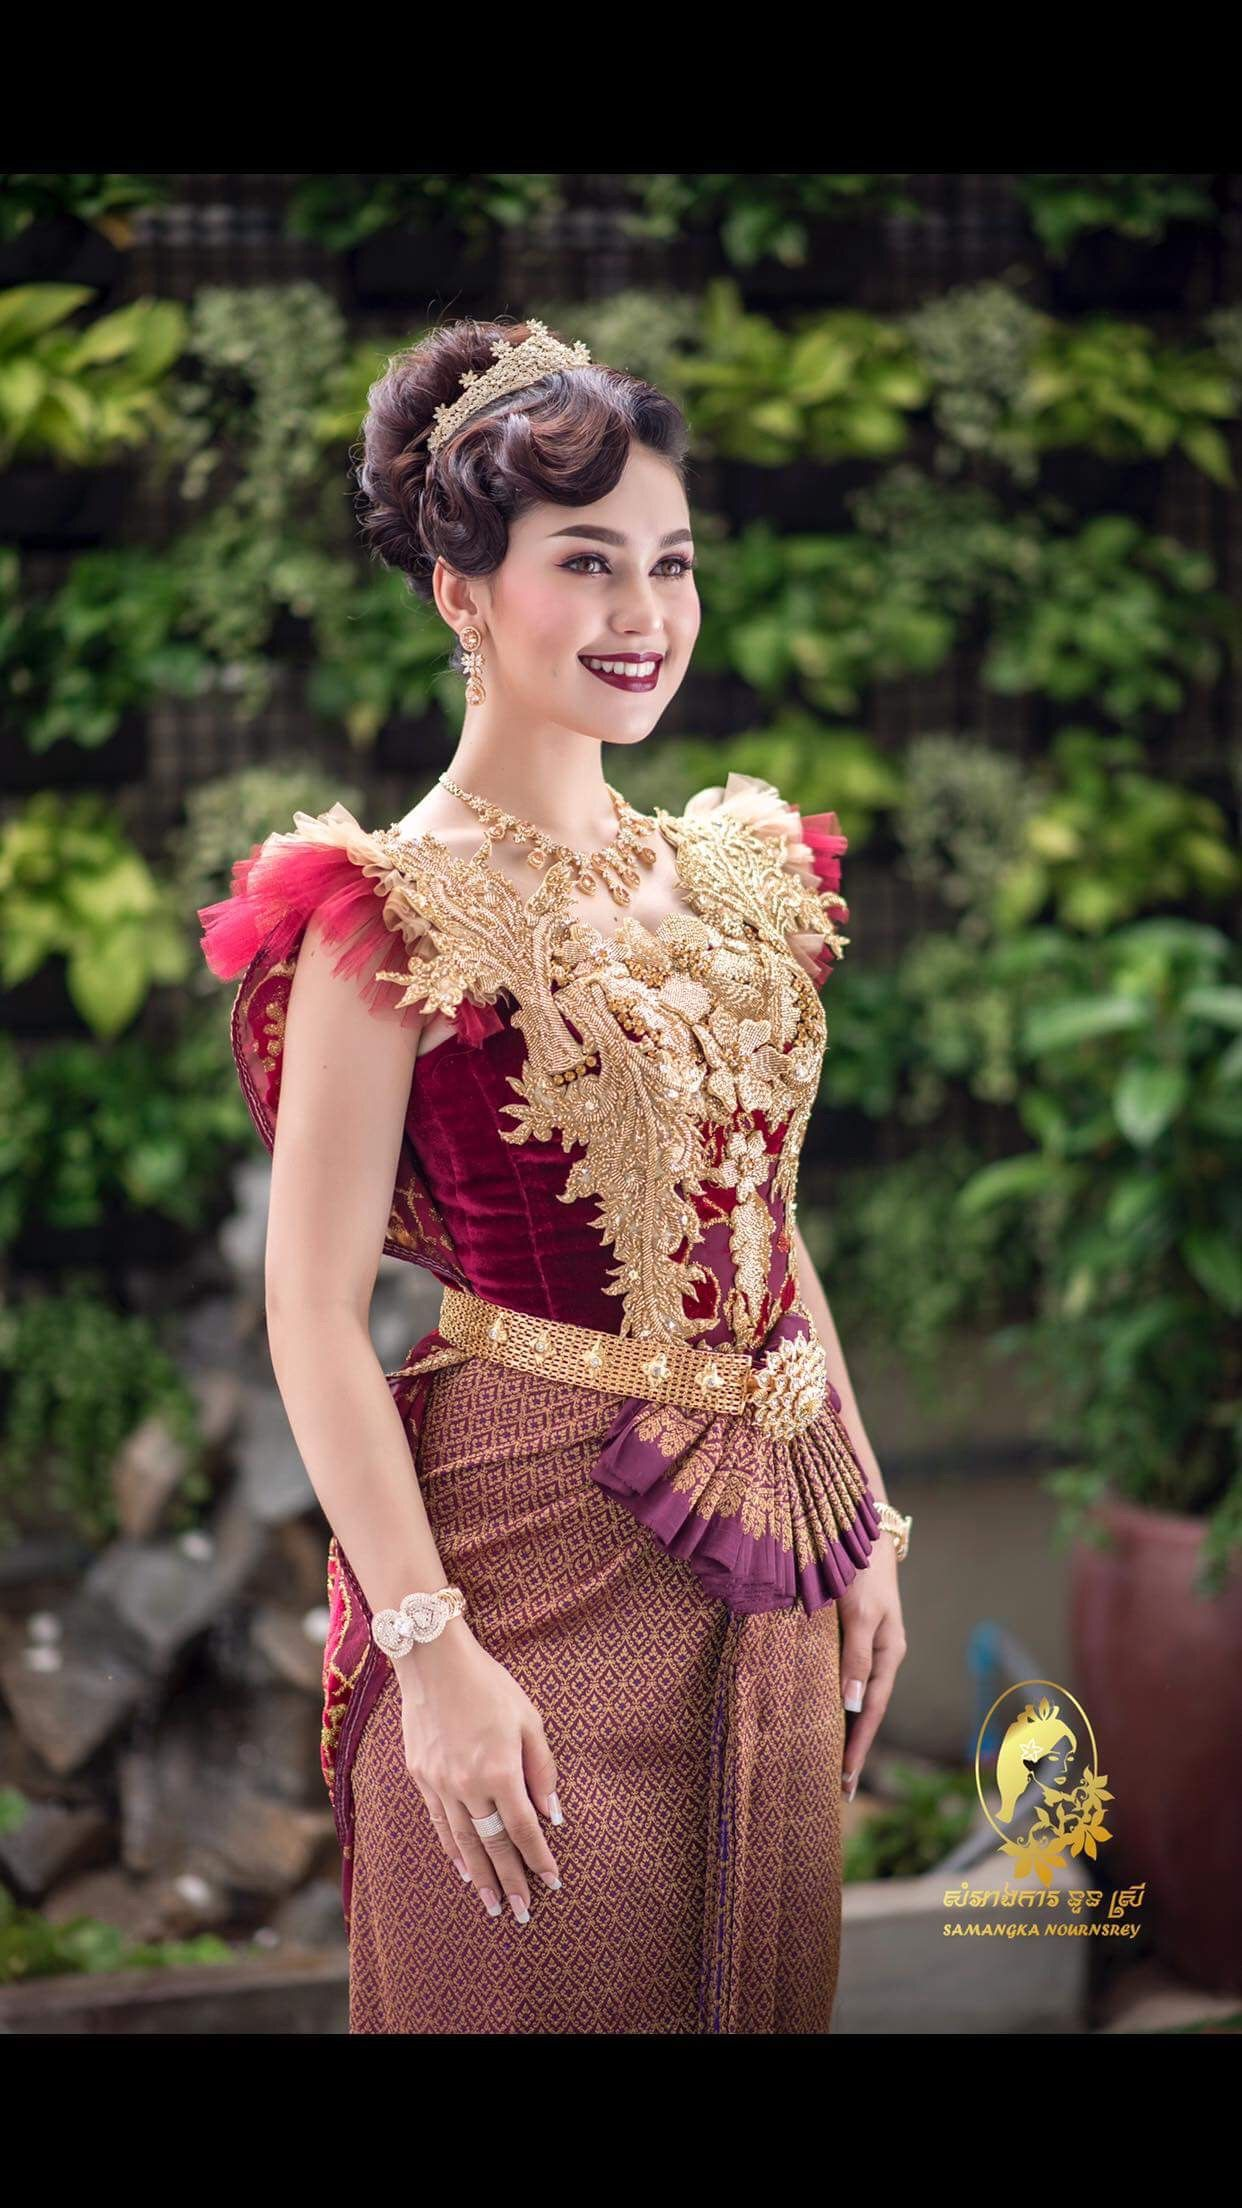 Pin by samangka nournsrey on khmer wedding outfits in